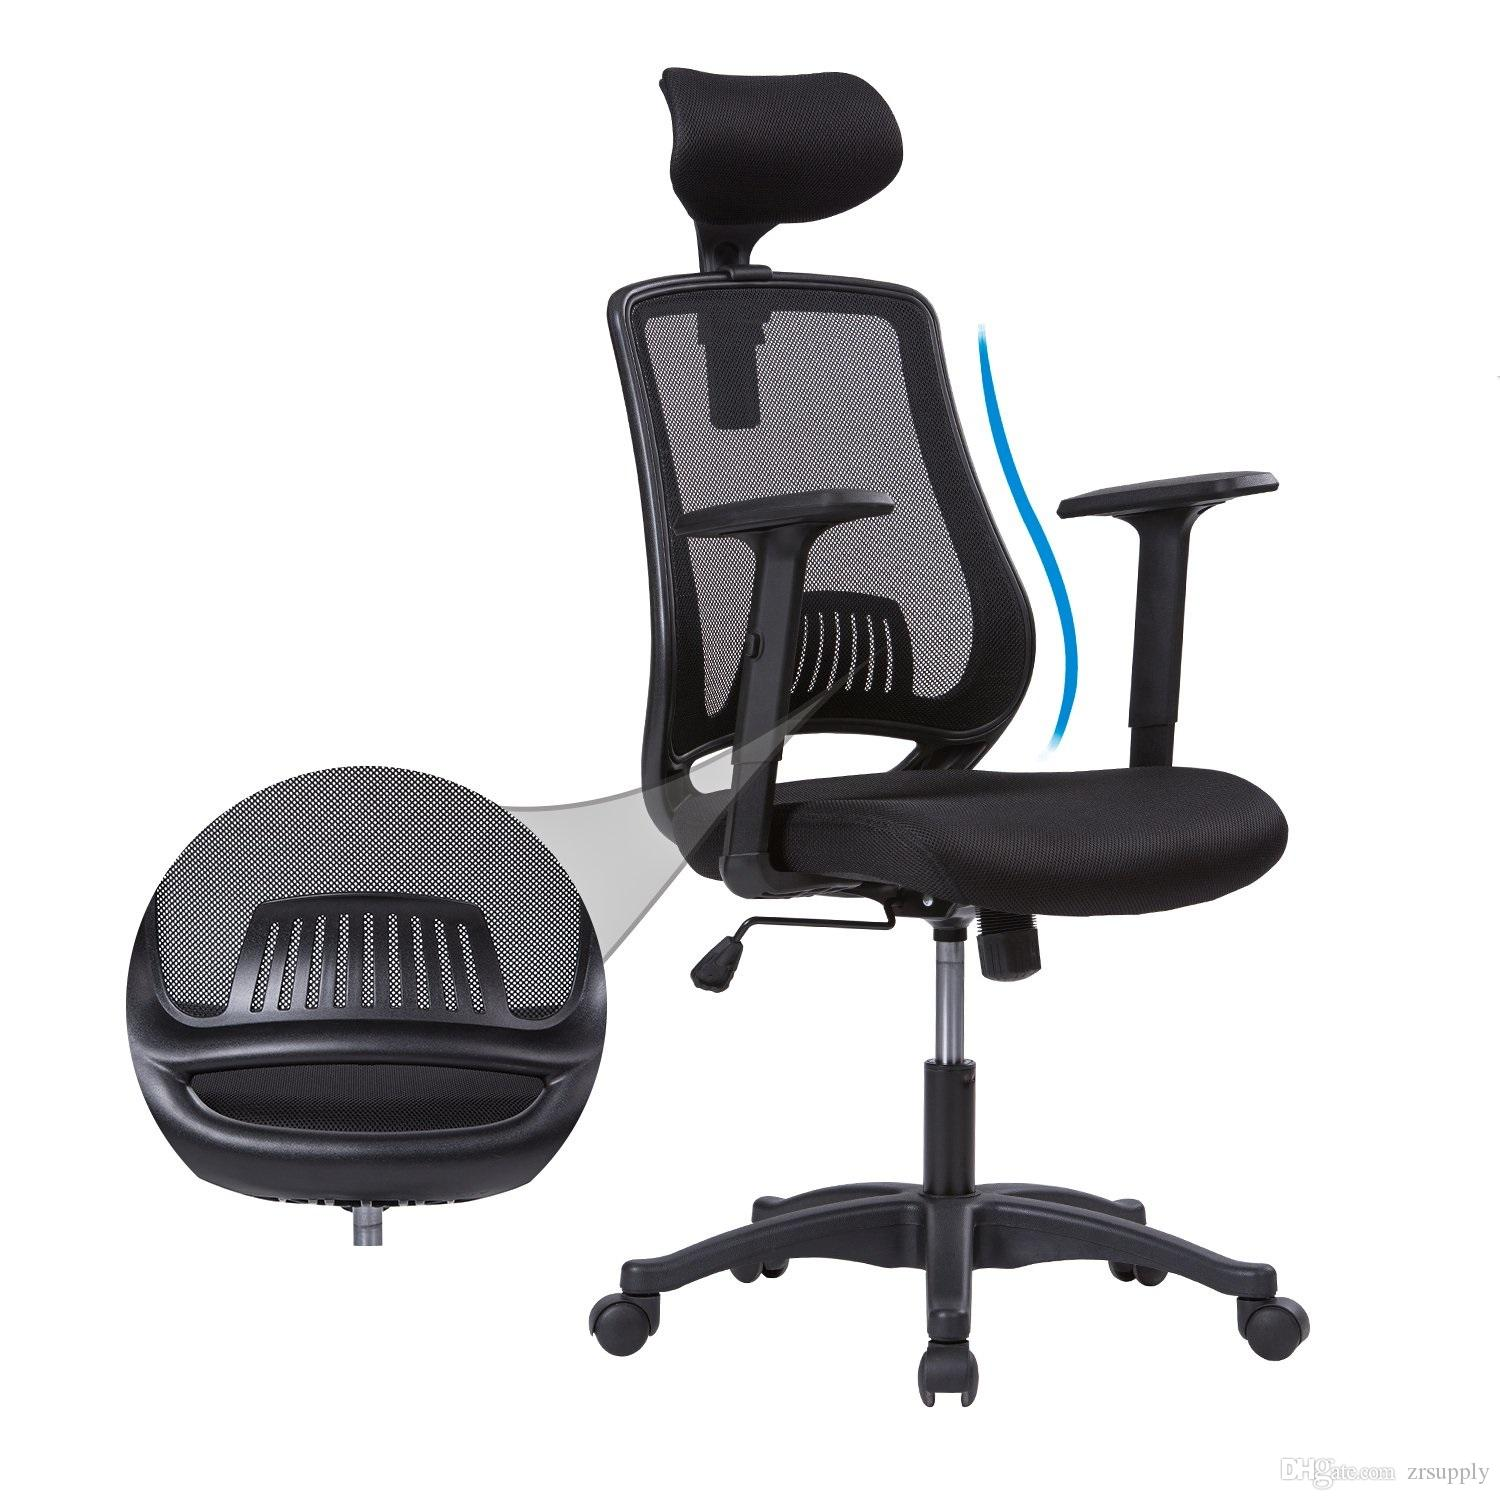 High-Back Mesh Office Chair Adjustable Armrests Headrest Breathable Ergonomic Computer Chair Desk Task Executive Chair Back Lumbar Support